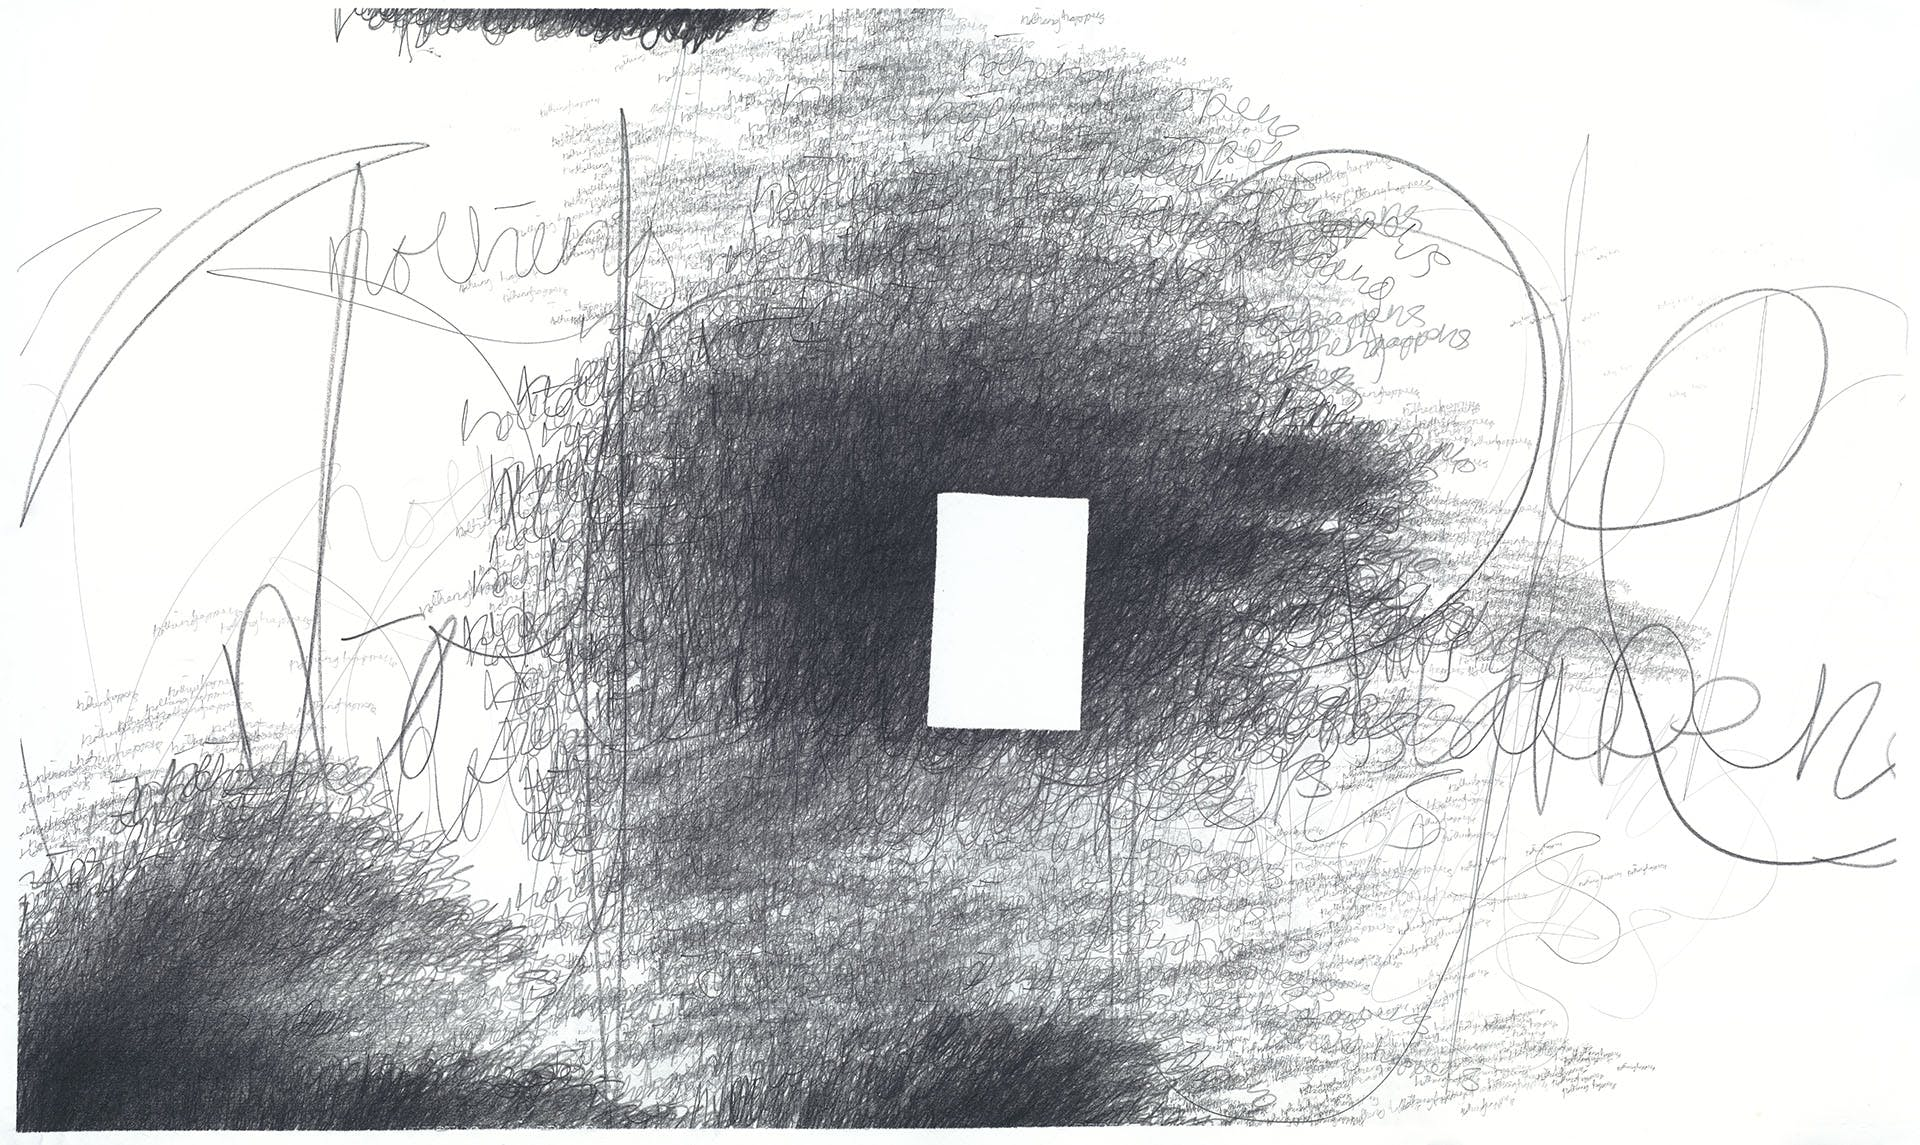 Nothing Happens (darkness drawing) 2018–2019 9B graphite crayon and 2B graphite pencil on Fabriano Artistico paper, 164×98cm